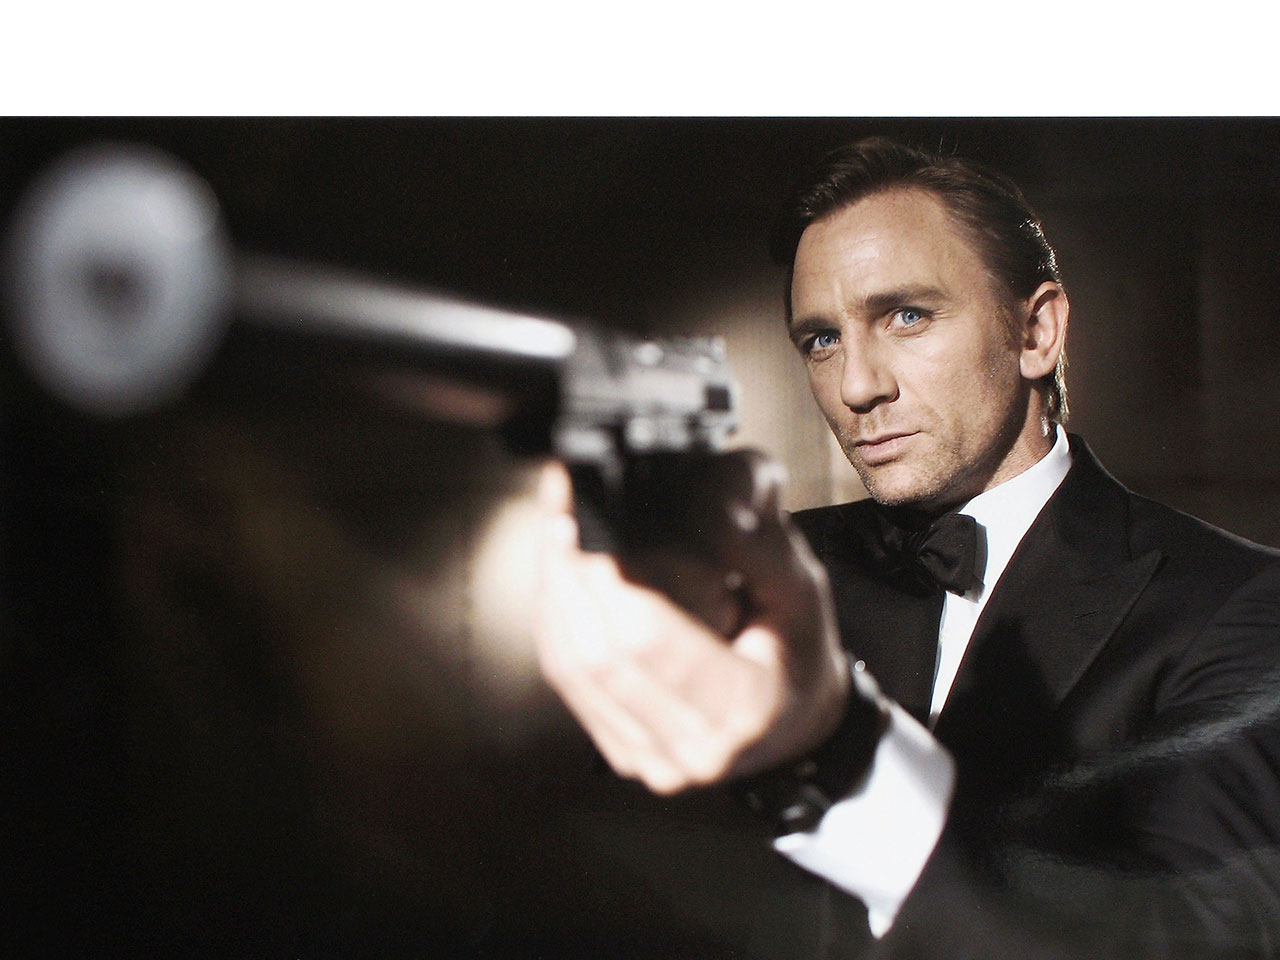 Watch: Daniel Craig Confirms He's Returning As James Bond for the Fifth Time forecasting